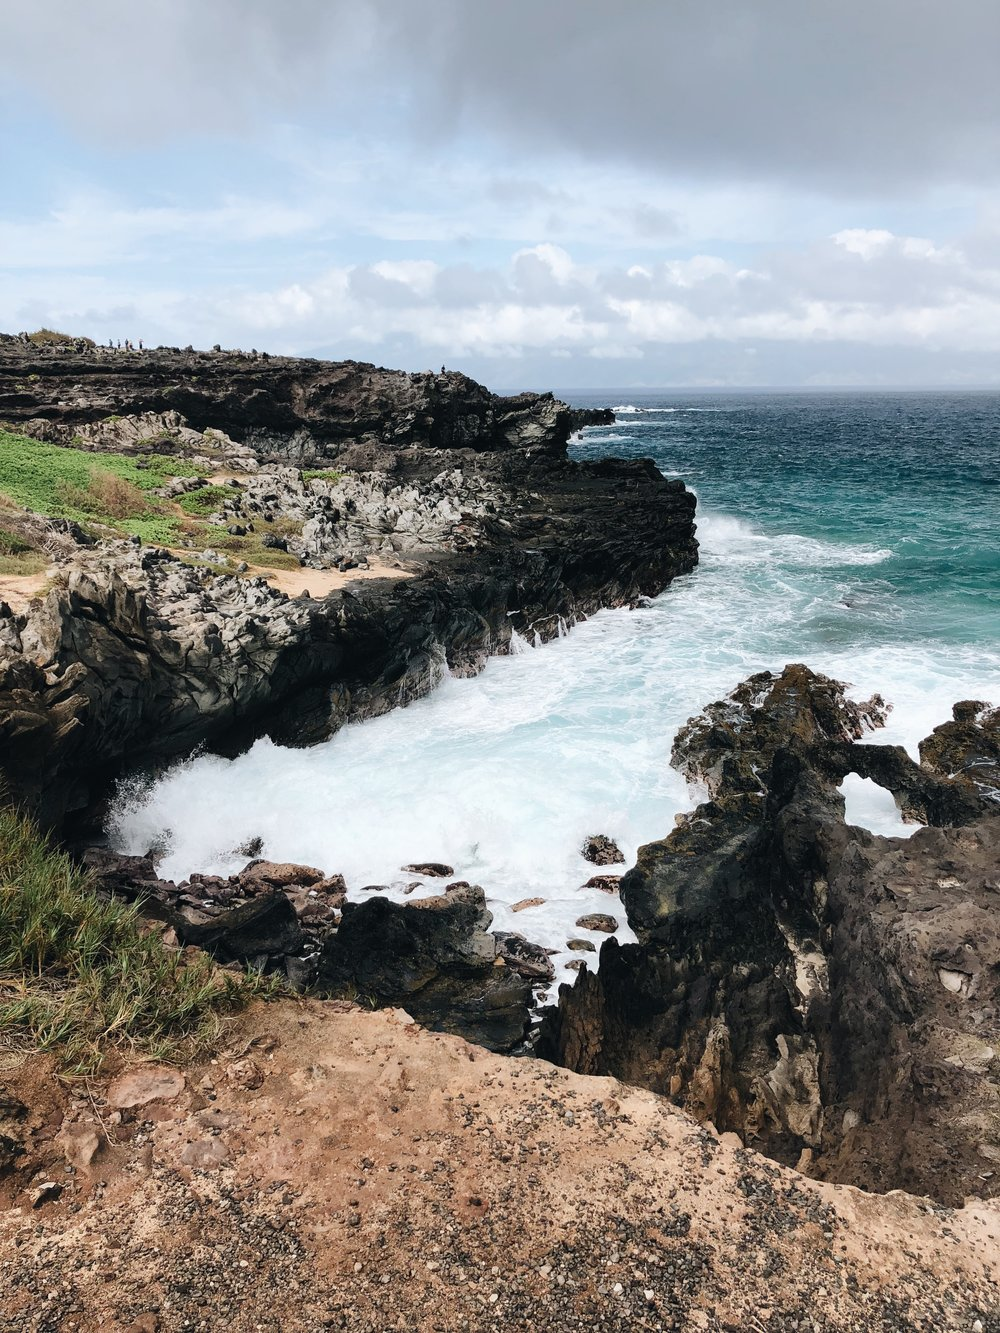 Walking along the Kapalua Coastal Trail to Makaluapuna Point (Dragon's Teeth)